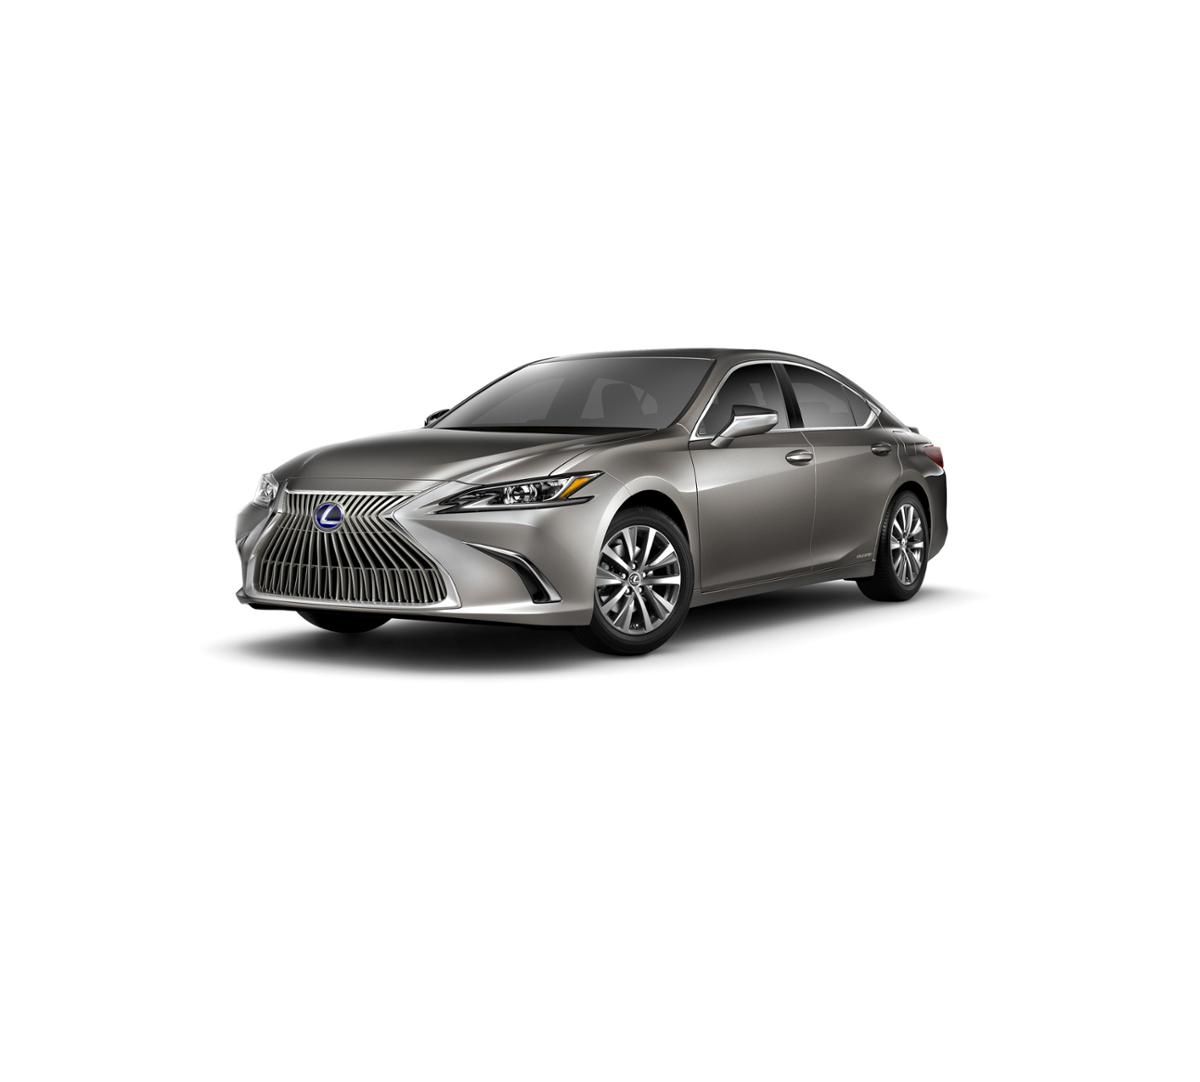 2019 Lexus ES 300h Vehicle Photo in Modesto, CA 95356